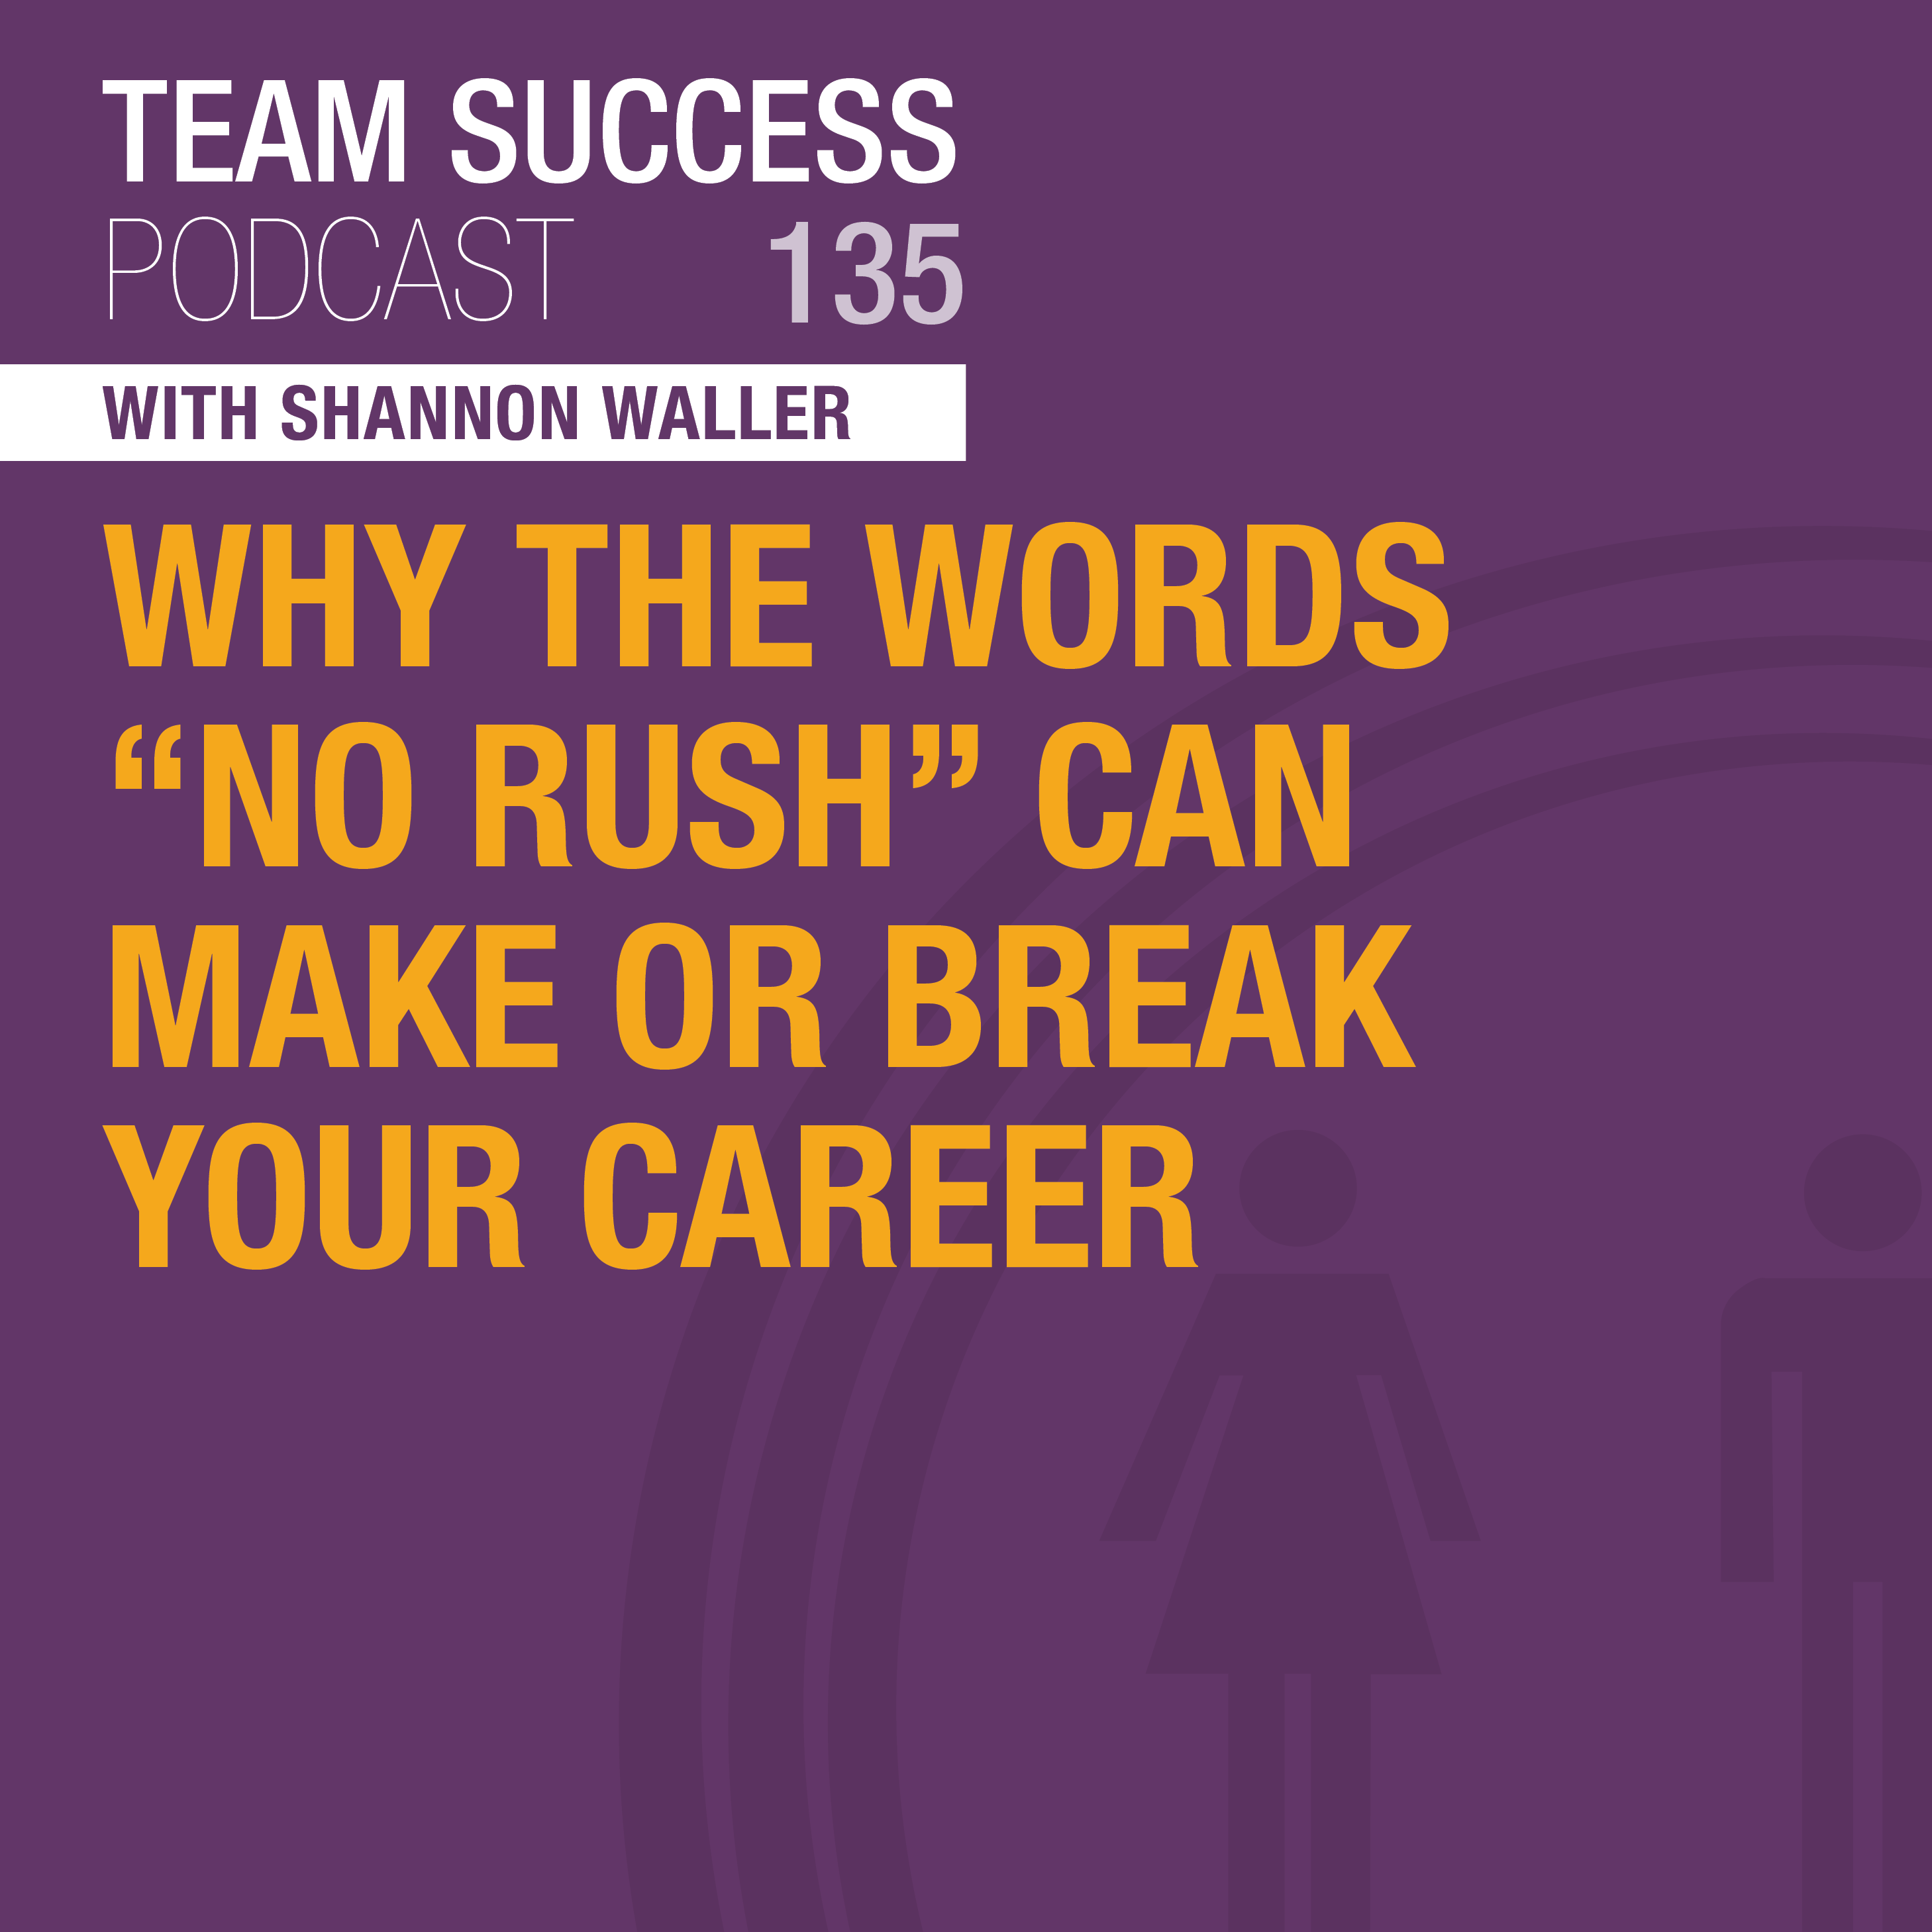 """Why The Words """"No Rush"""" Can Make Or Break Your Career"""